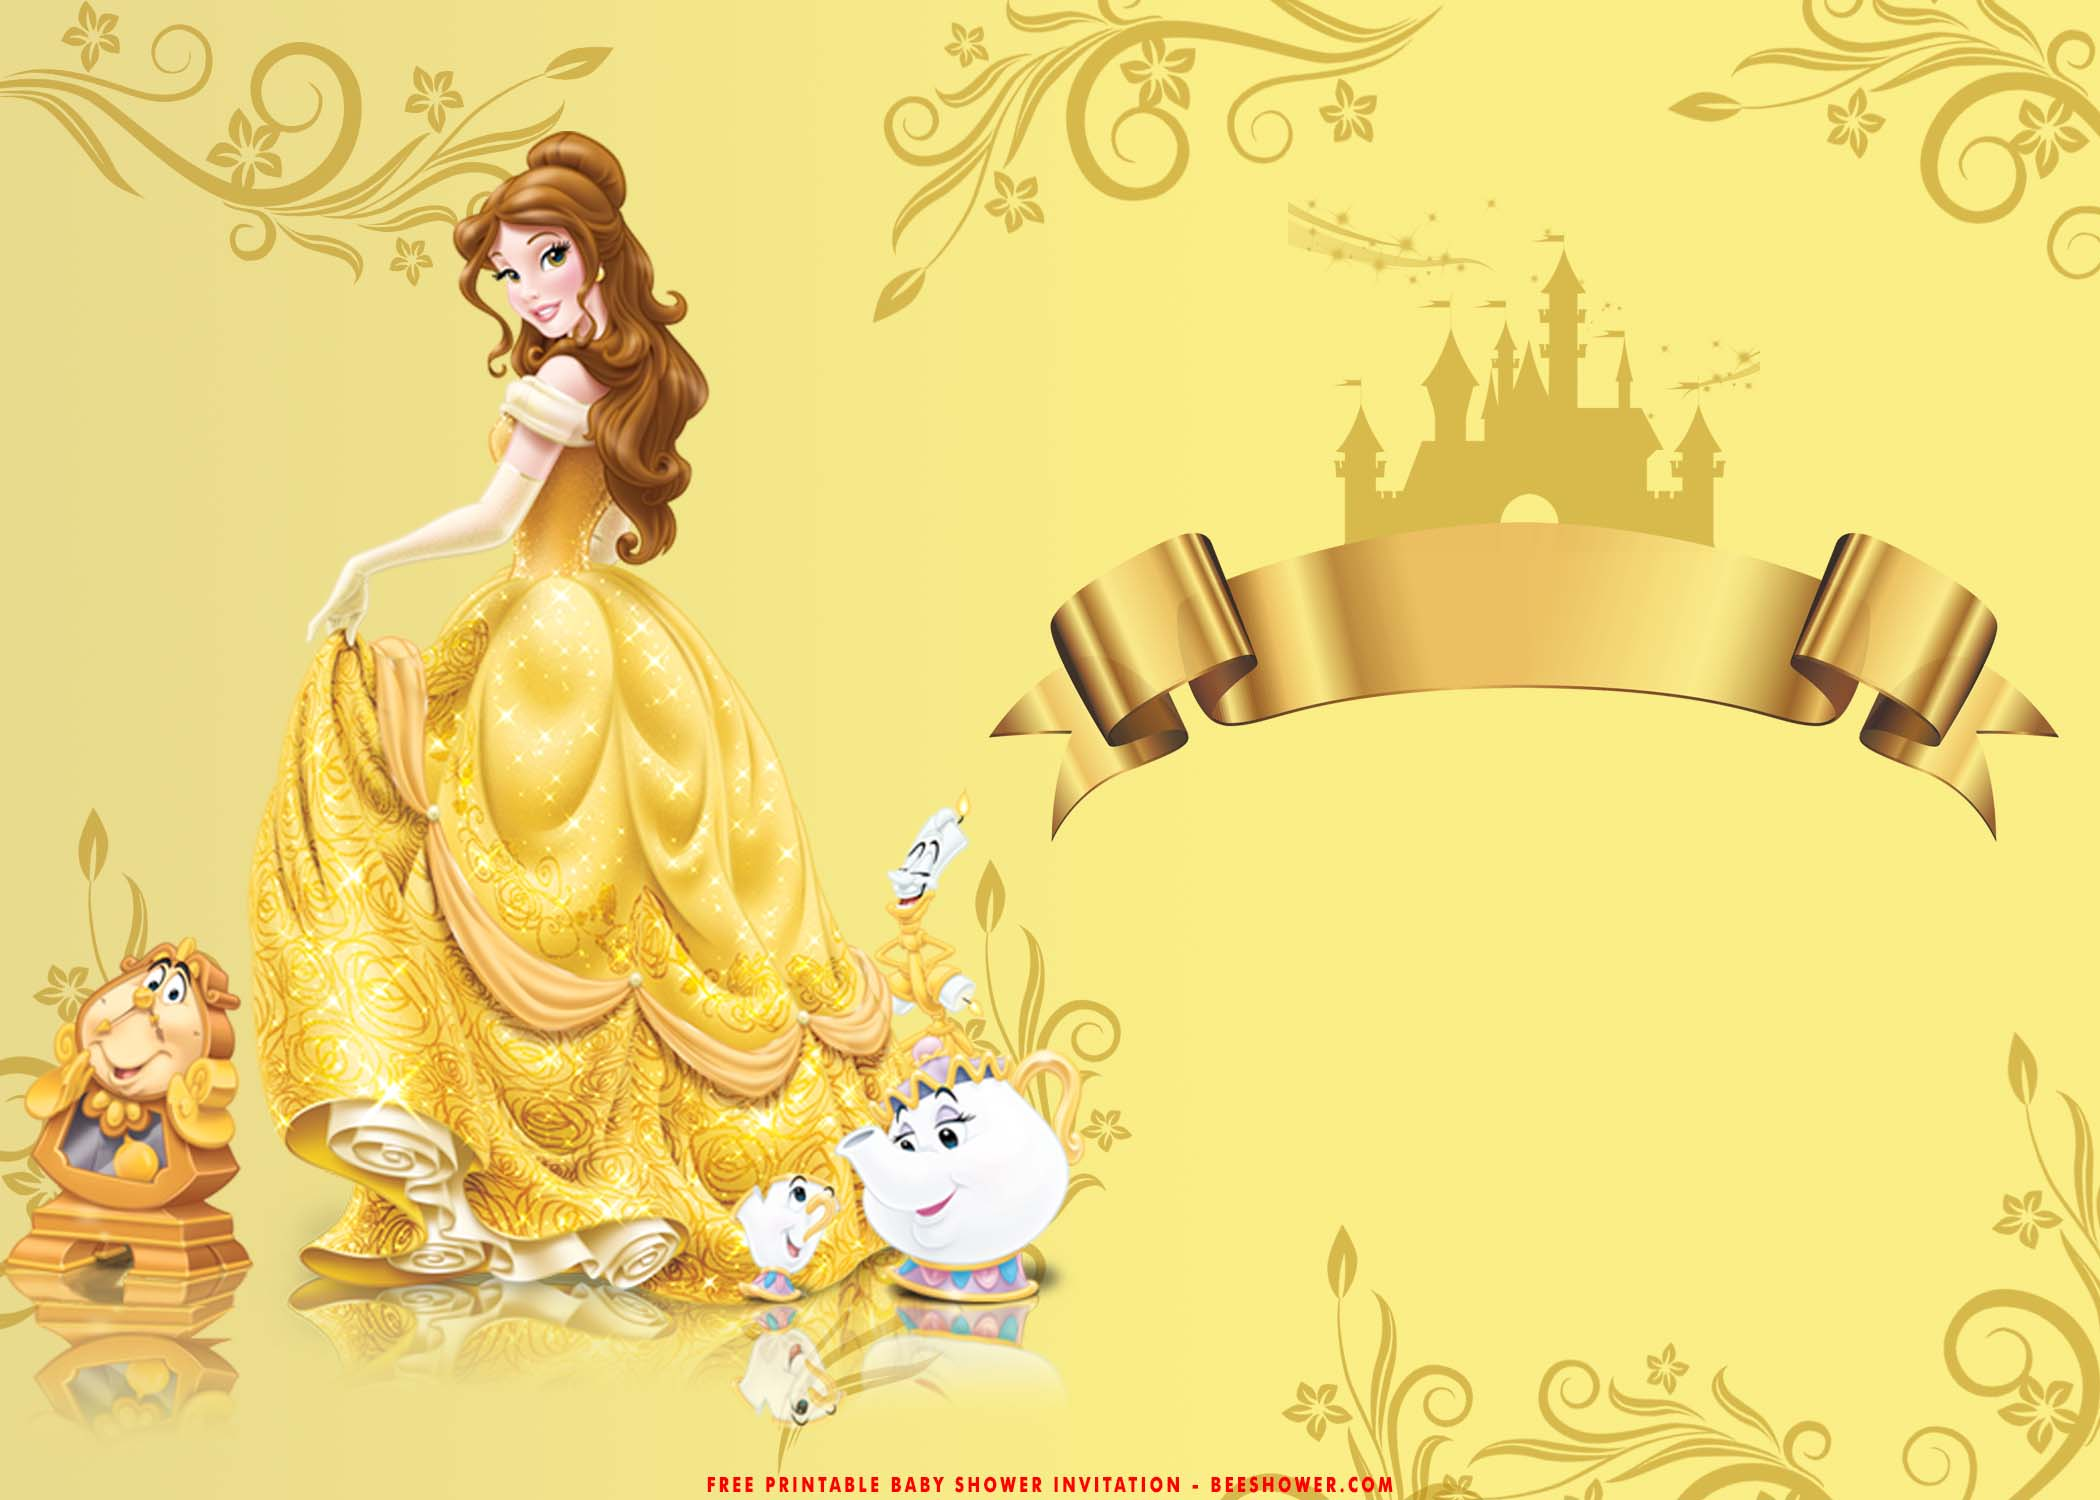 Free Printable Romantic Beauty And The Beast Baby